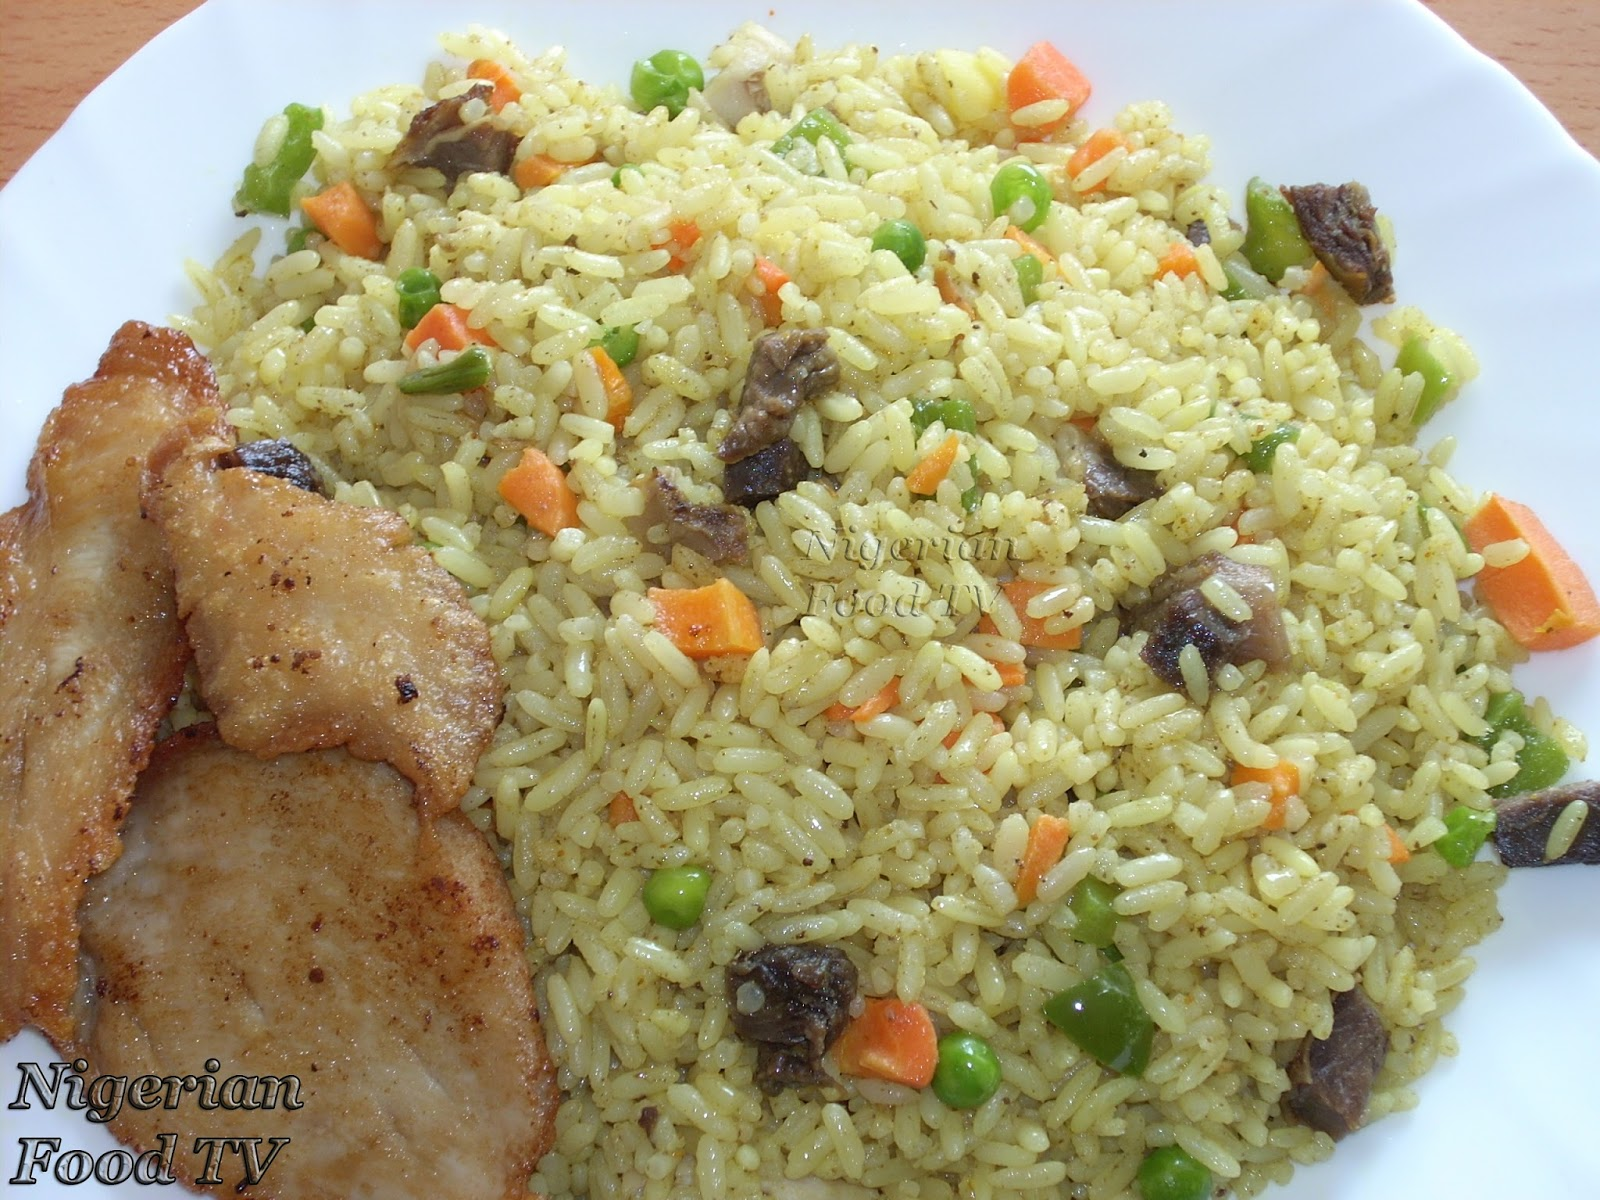 nigerian food recipes, nigerian recipes, nigerian food,Nigerian Food TV